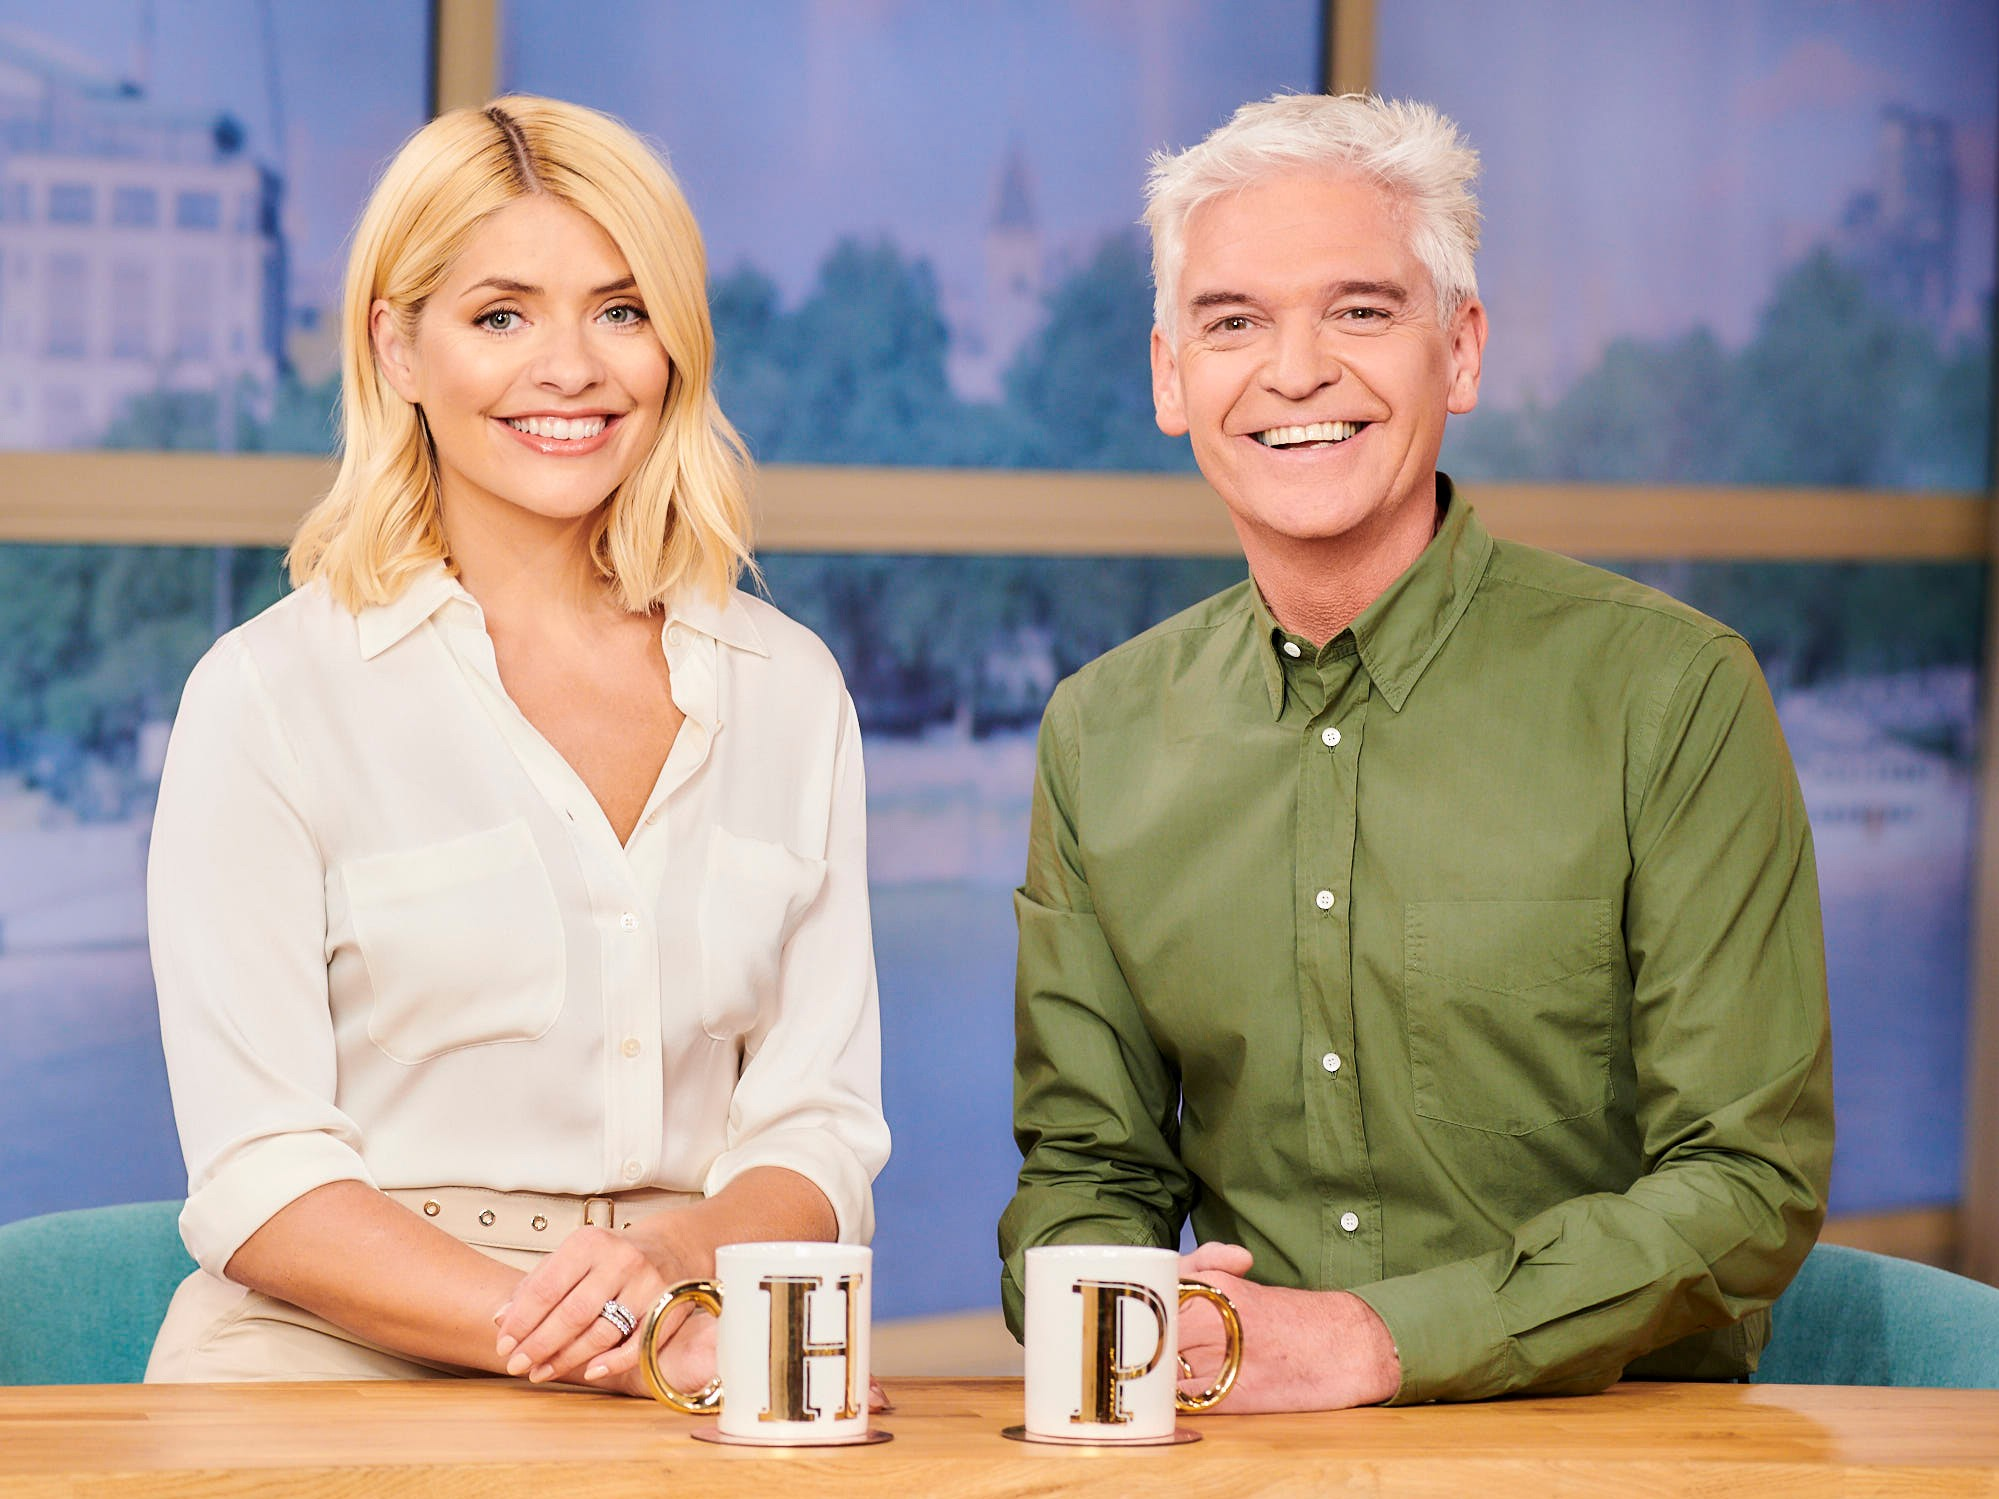 Holly Willoughby et Philip Schofield présentent This Morning ensemble.